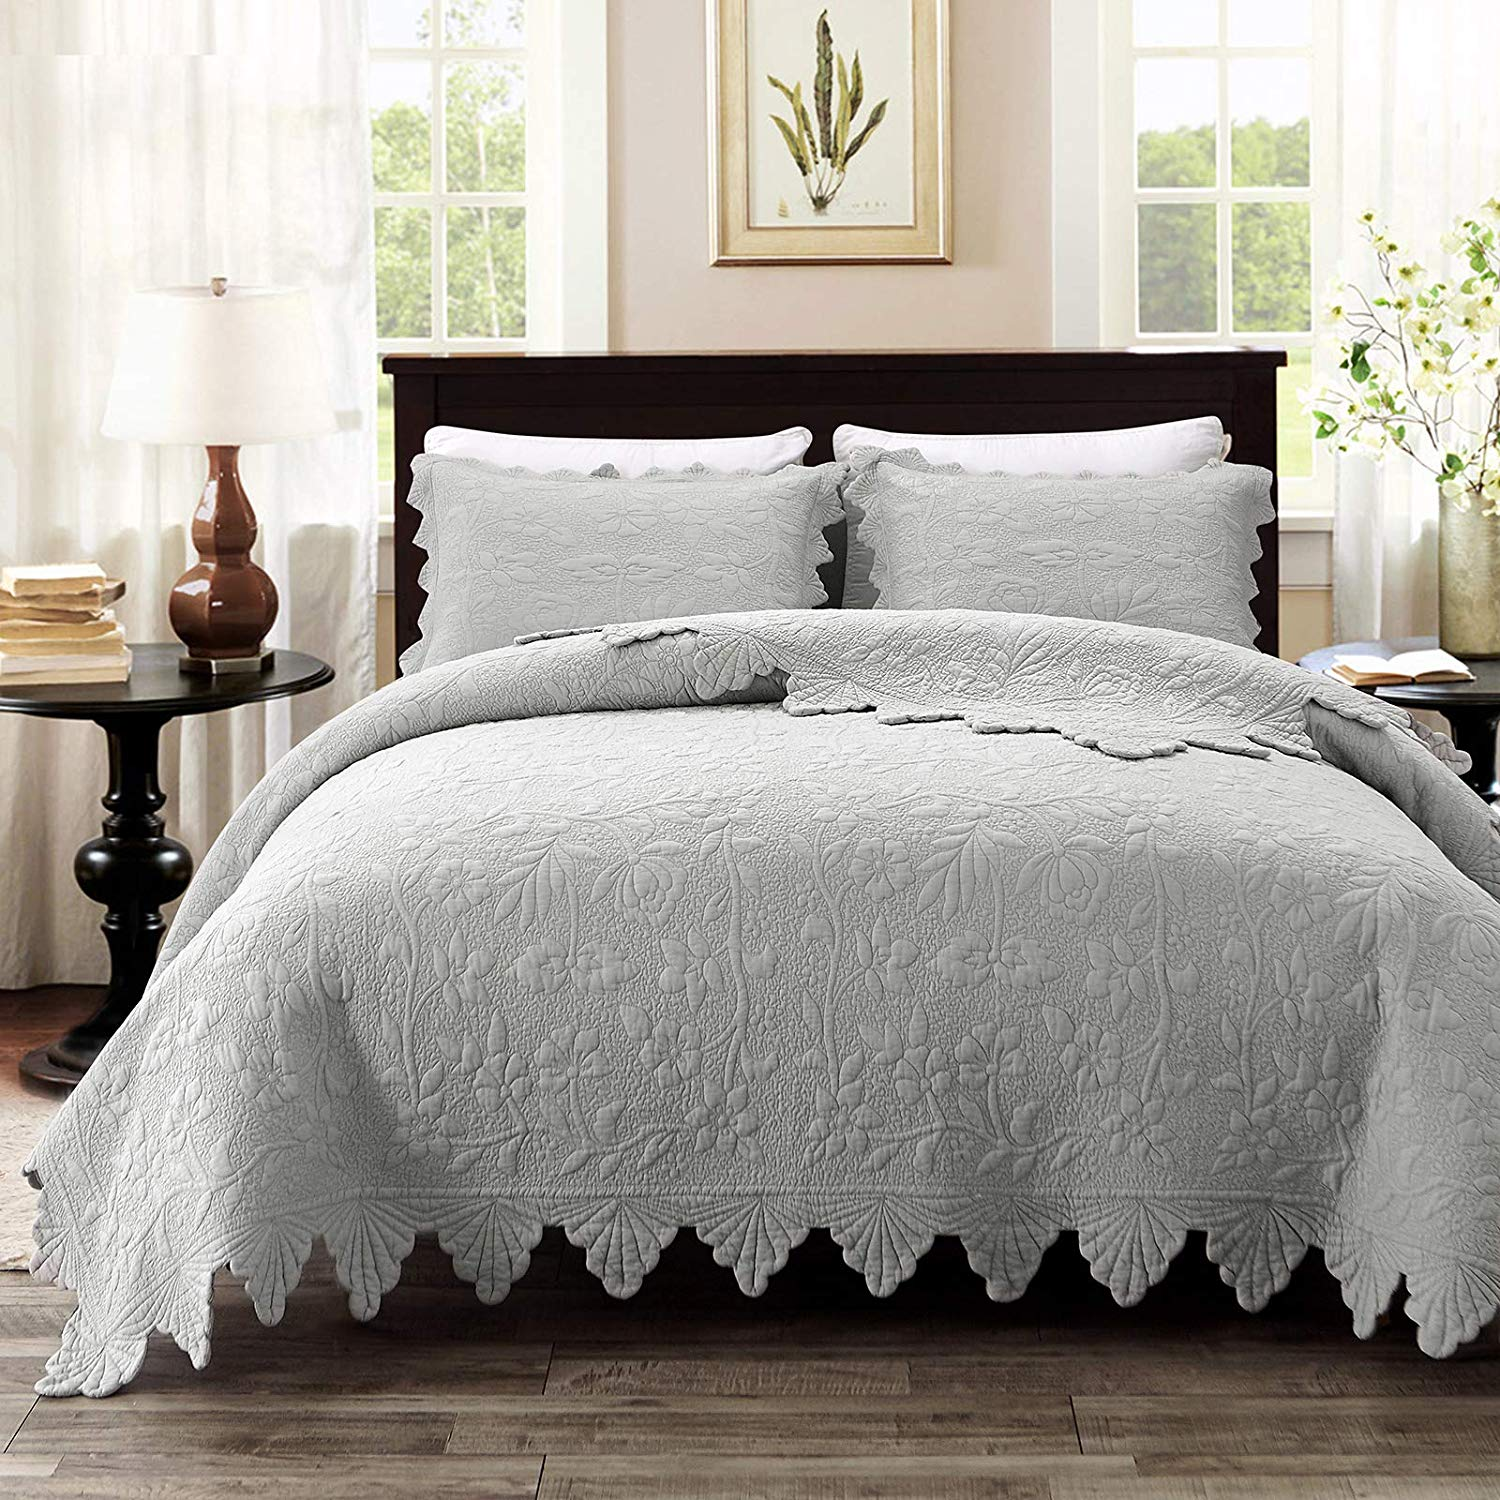 farmhouse-bedding-floral